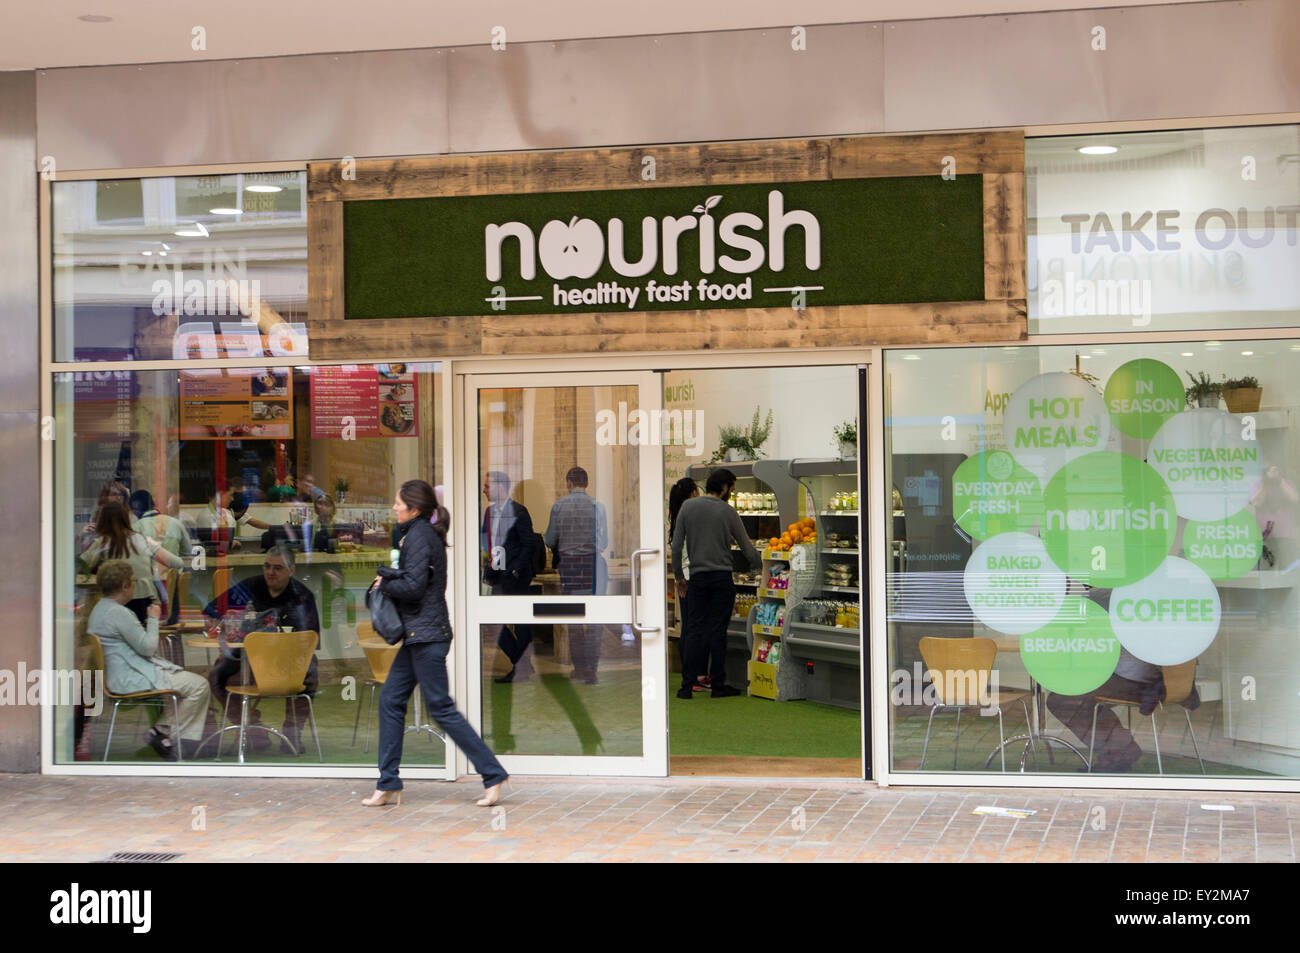 The new Nourish Shop in Leeds City Centre - Stock Image